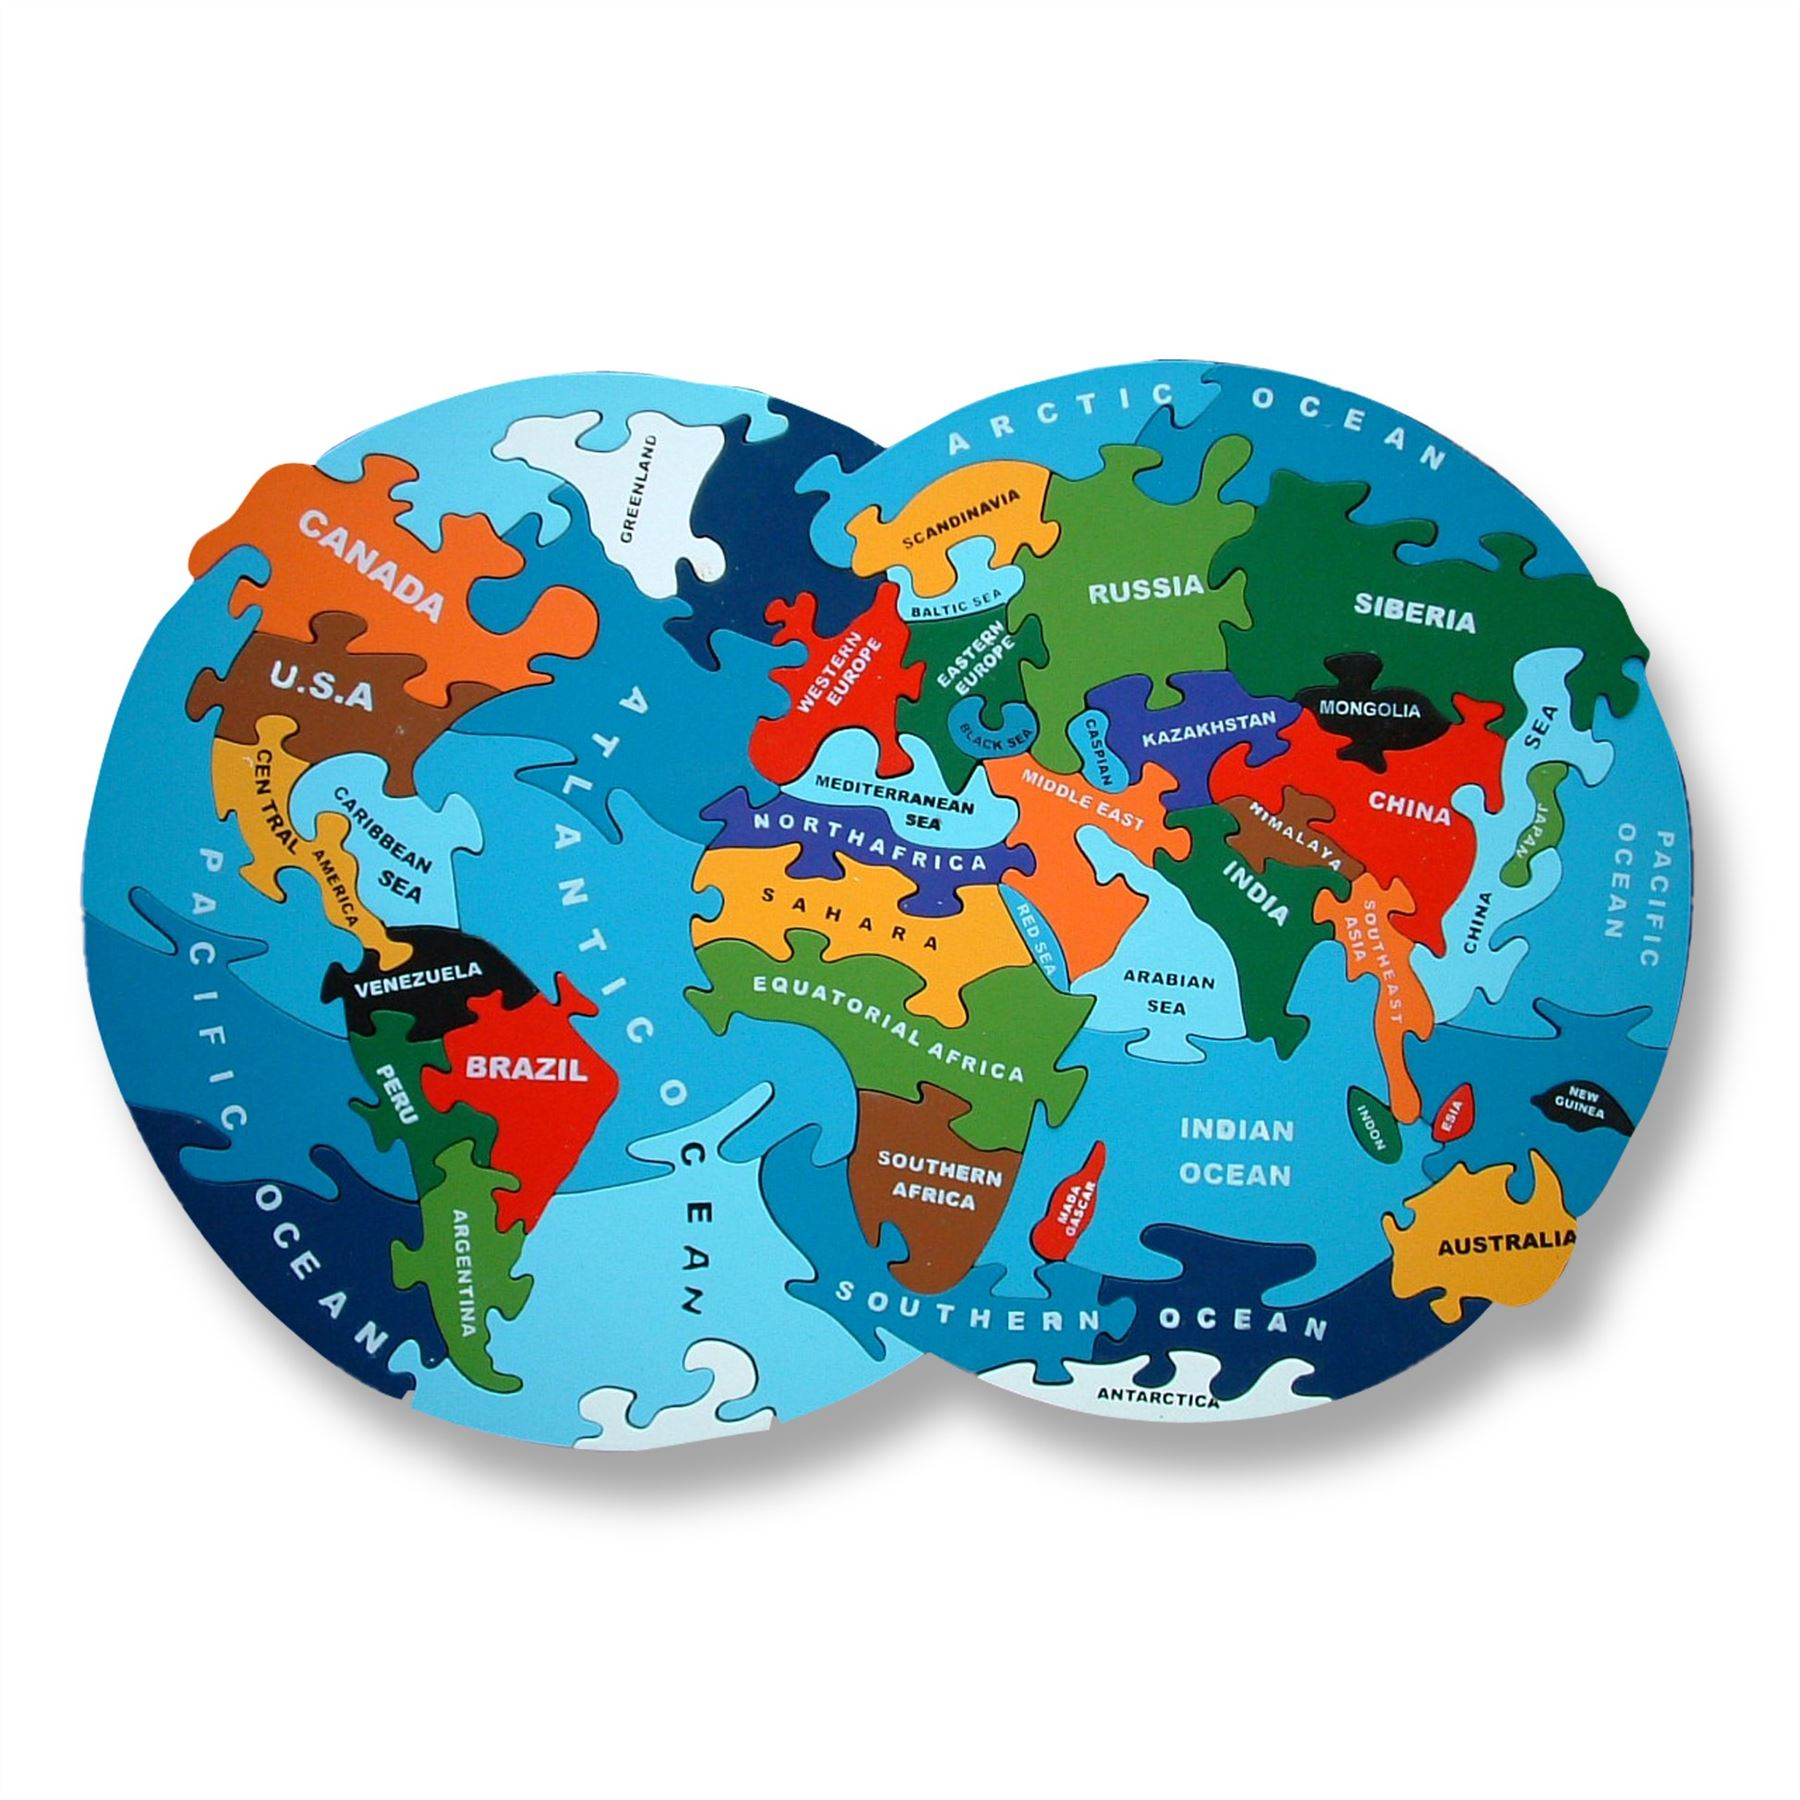 Wooden map of the world atlas jigsaw puzzle handmade in ireland ebay resntentobalflowflowcomponenttechnicalissues gumiabroncs Images